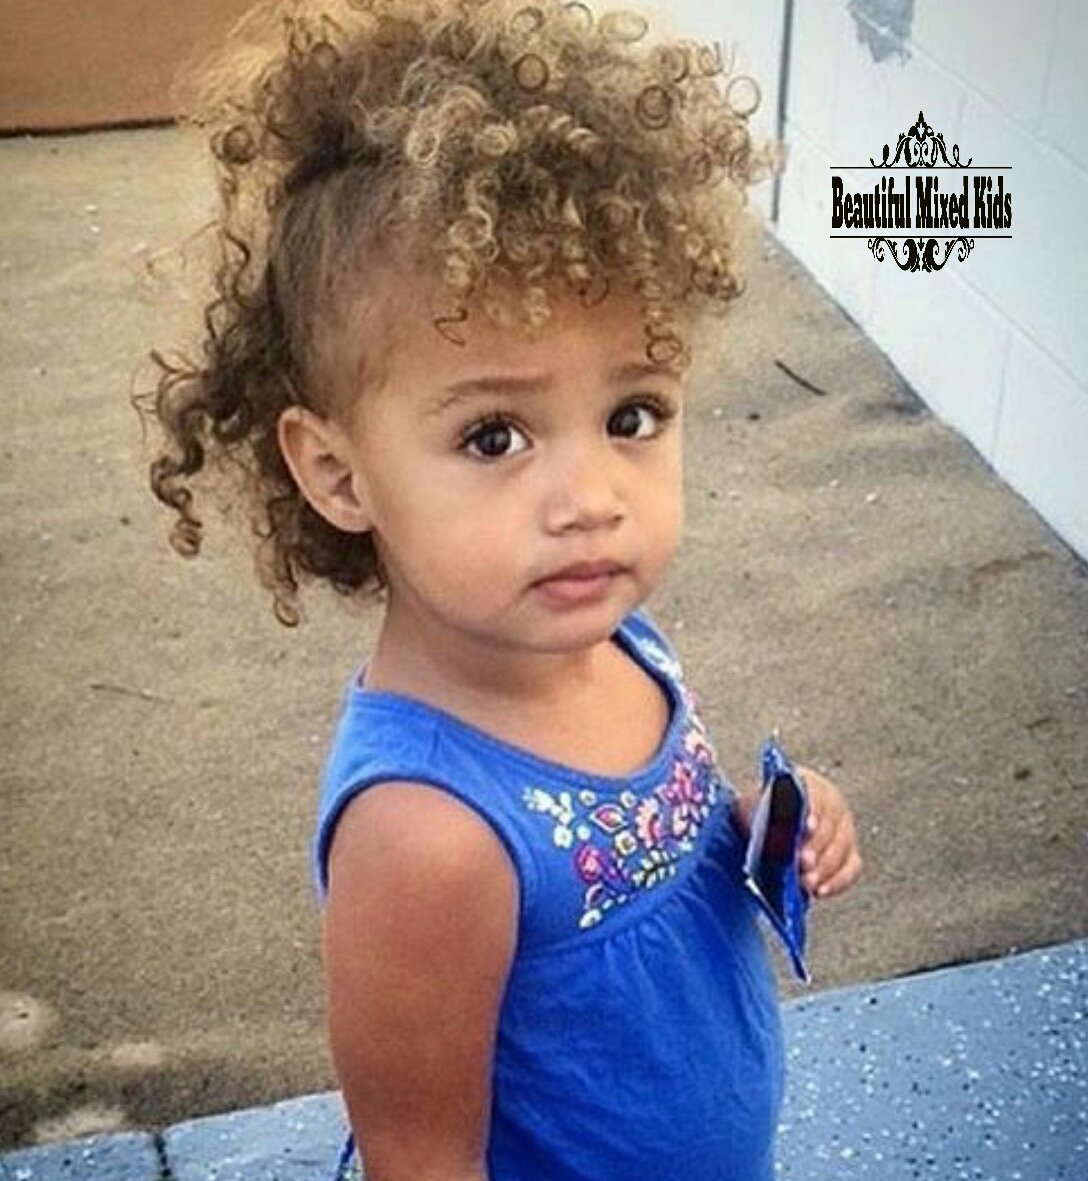 Beautiful Mixed Kids On Twitter Quot Nazarae Nichole 1 Year